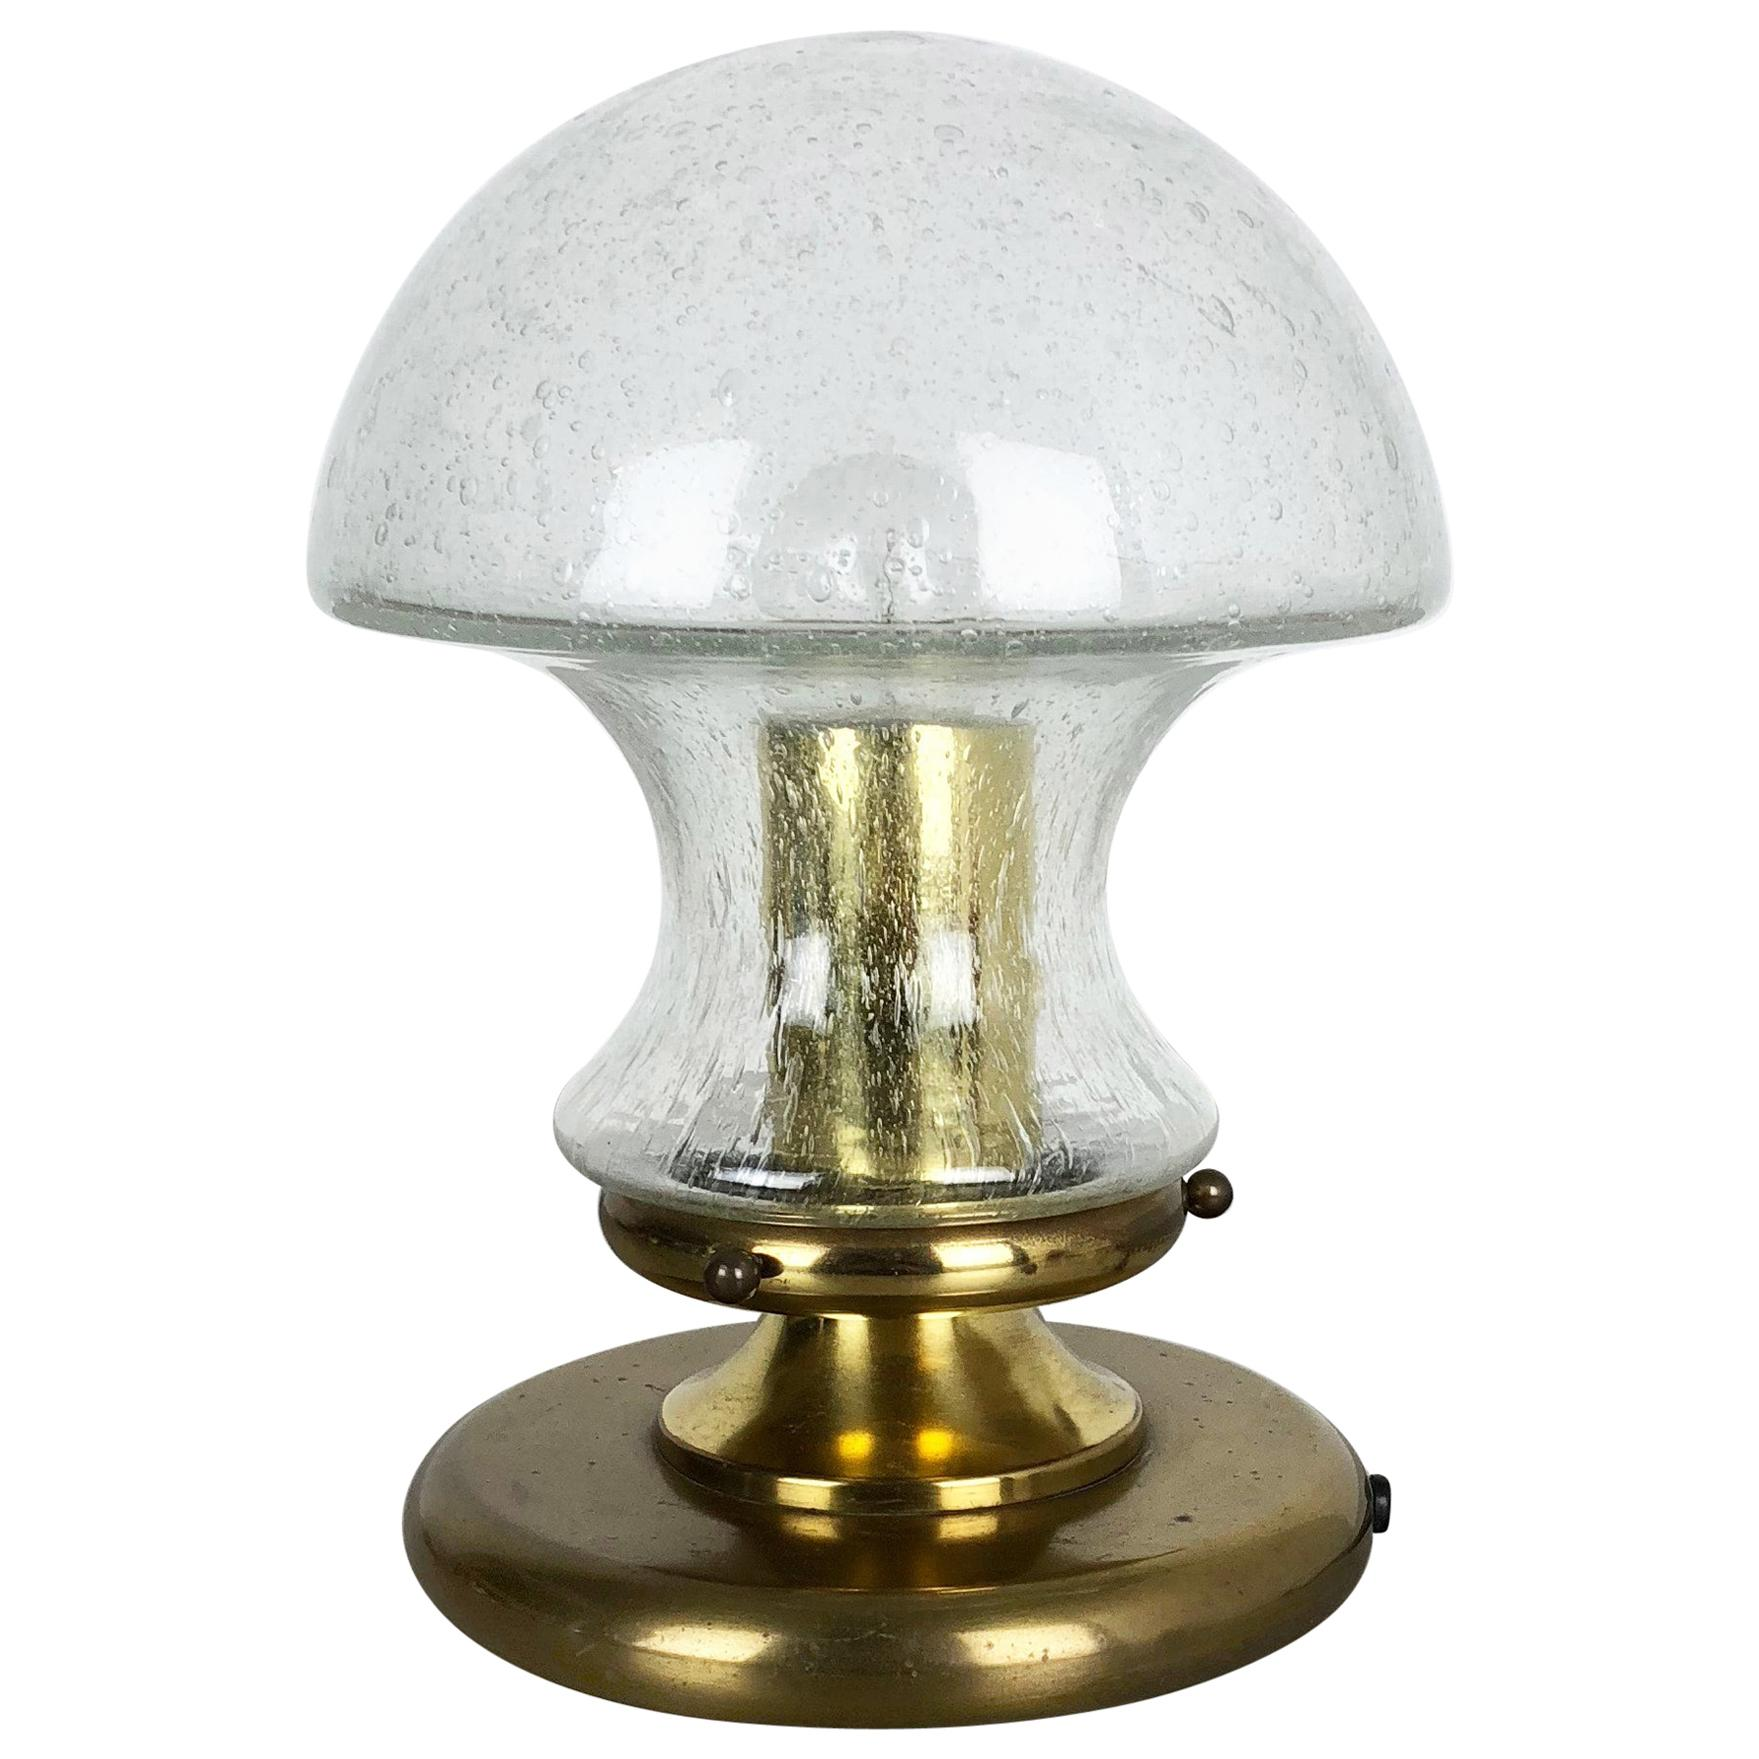 Modernist Glass and Brass Mushroom Table Light by Doria Lights, 1970s, Germany